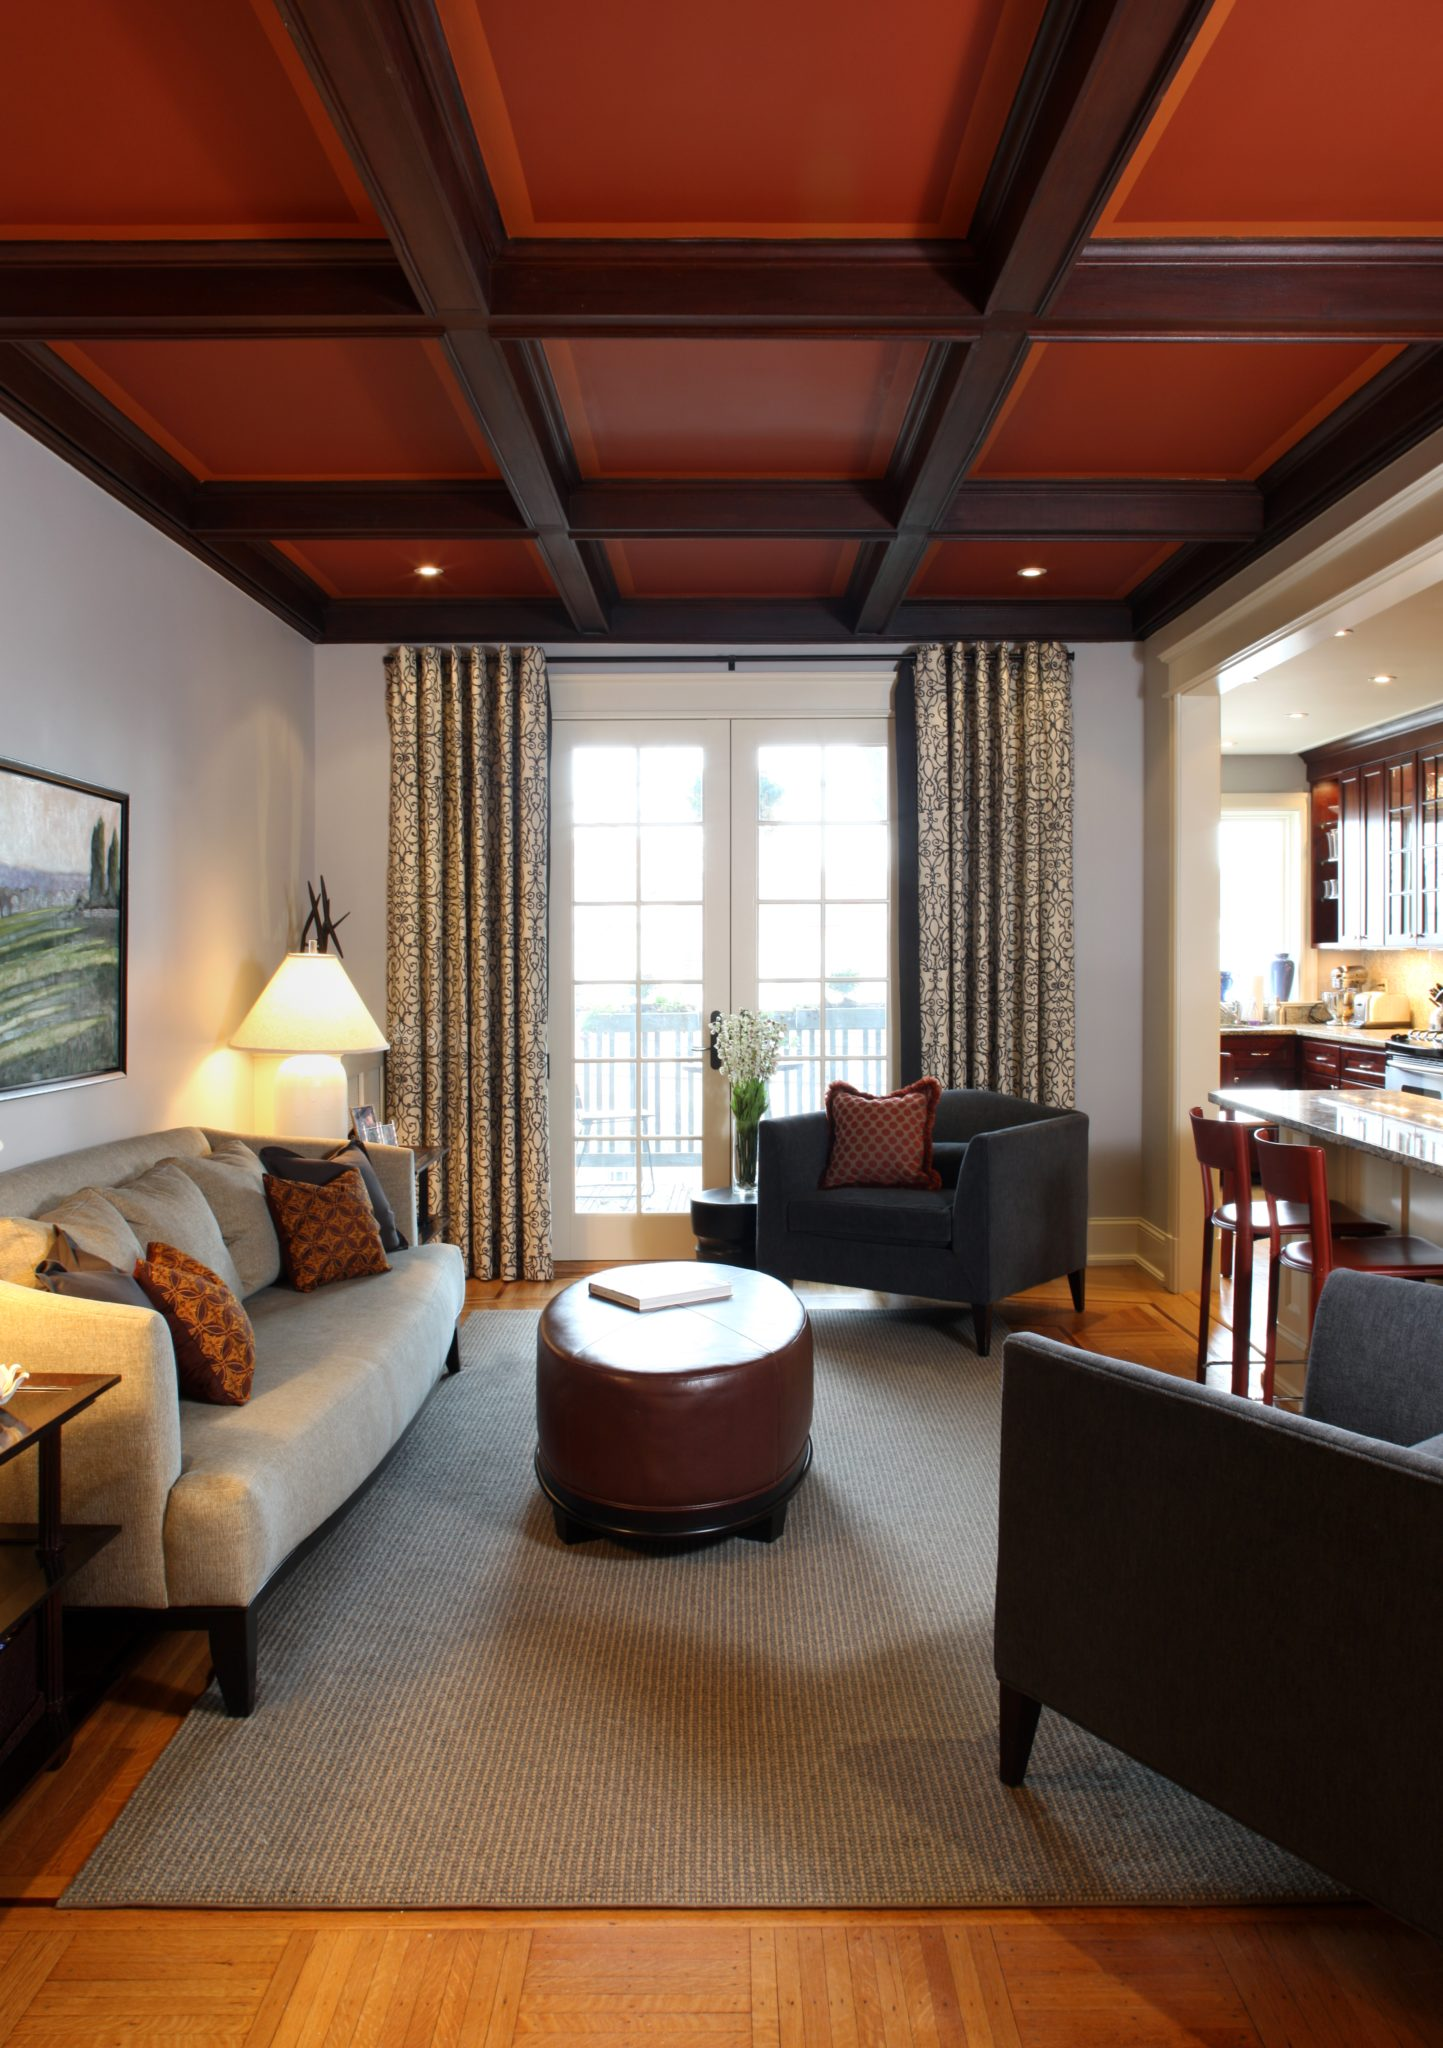 Family room with coffered ceiling in Washington, DC, rowhouse. By J.D. Ireland Interior Architecture & Design